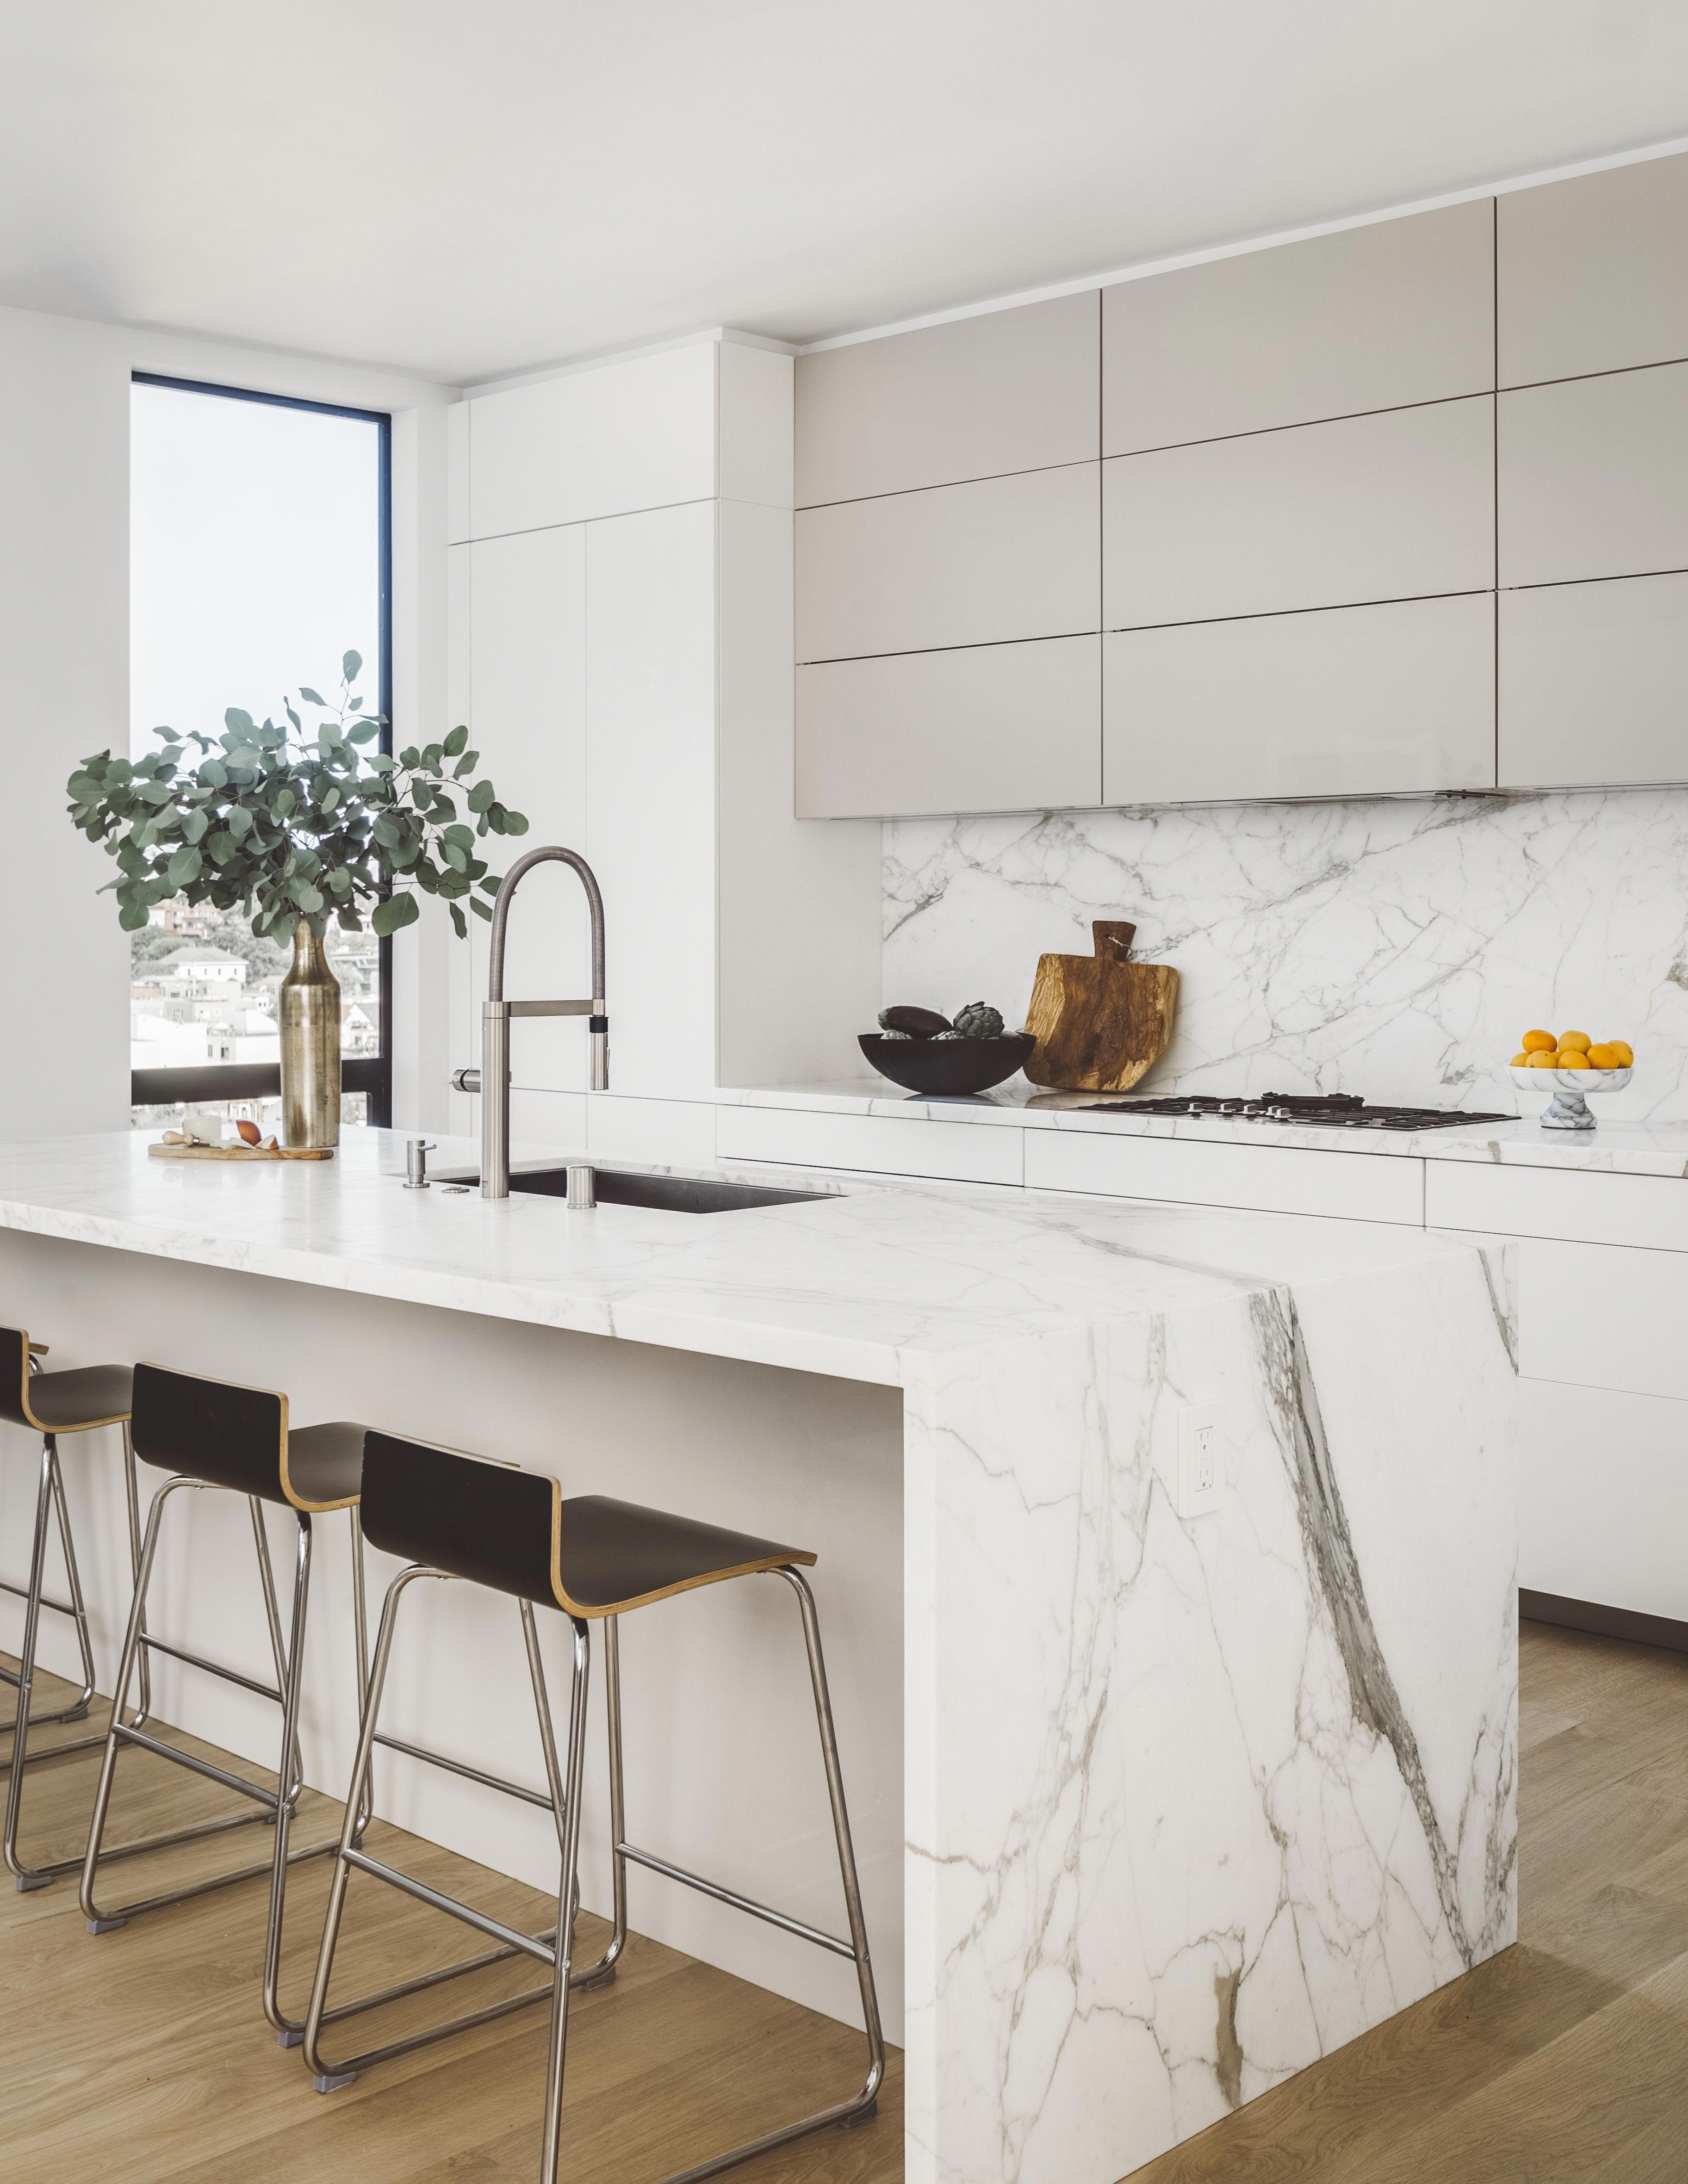 Quality Kitchen Cabinets San Francisco 2021 in 2020 ...